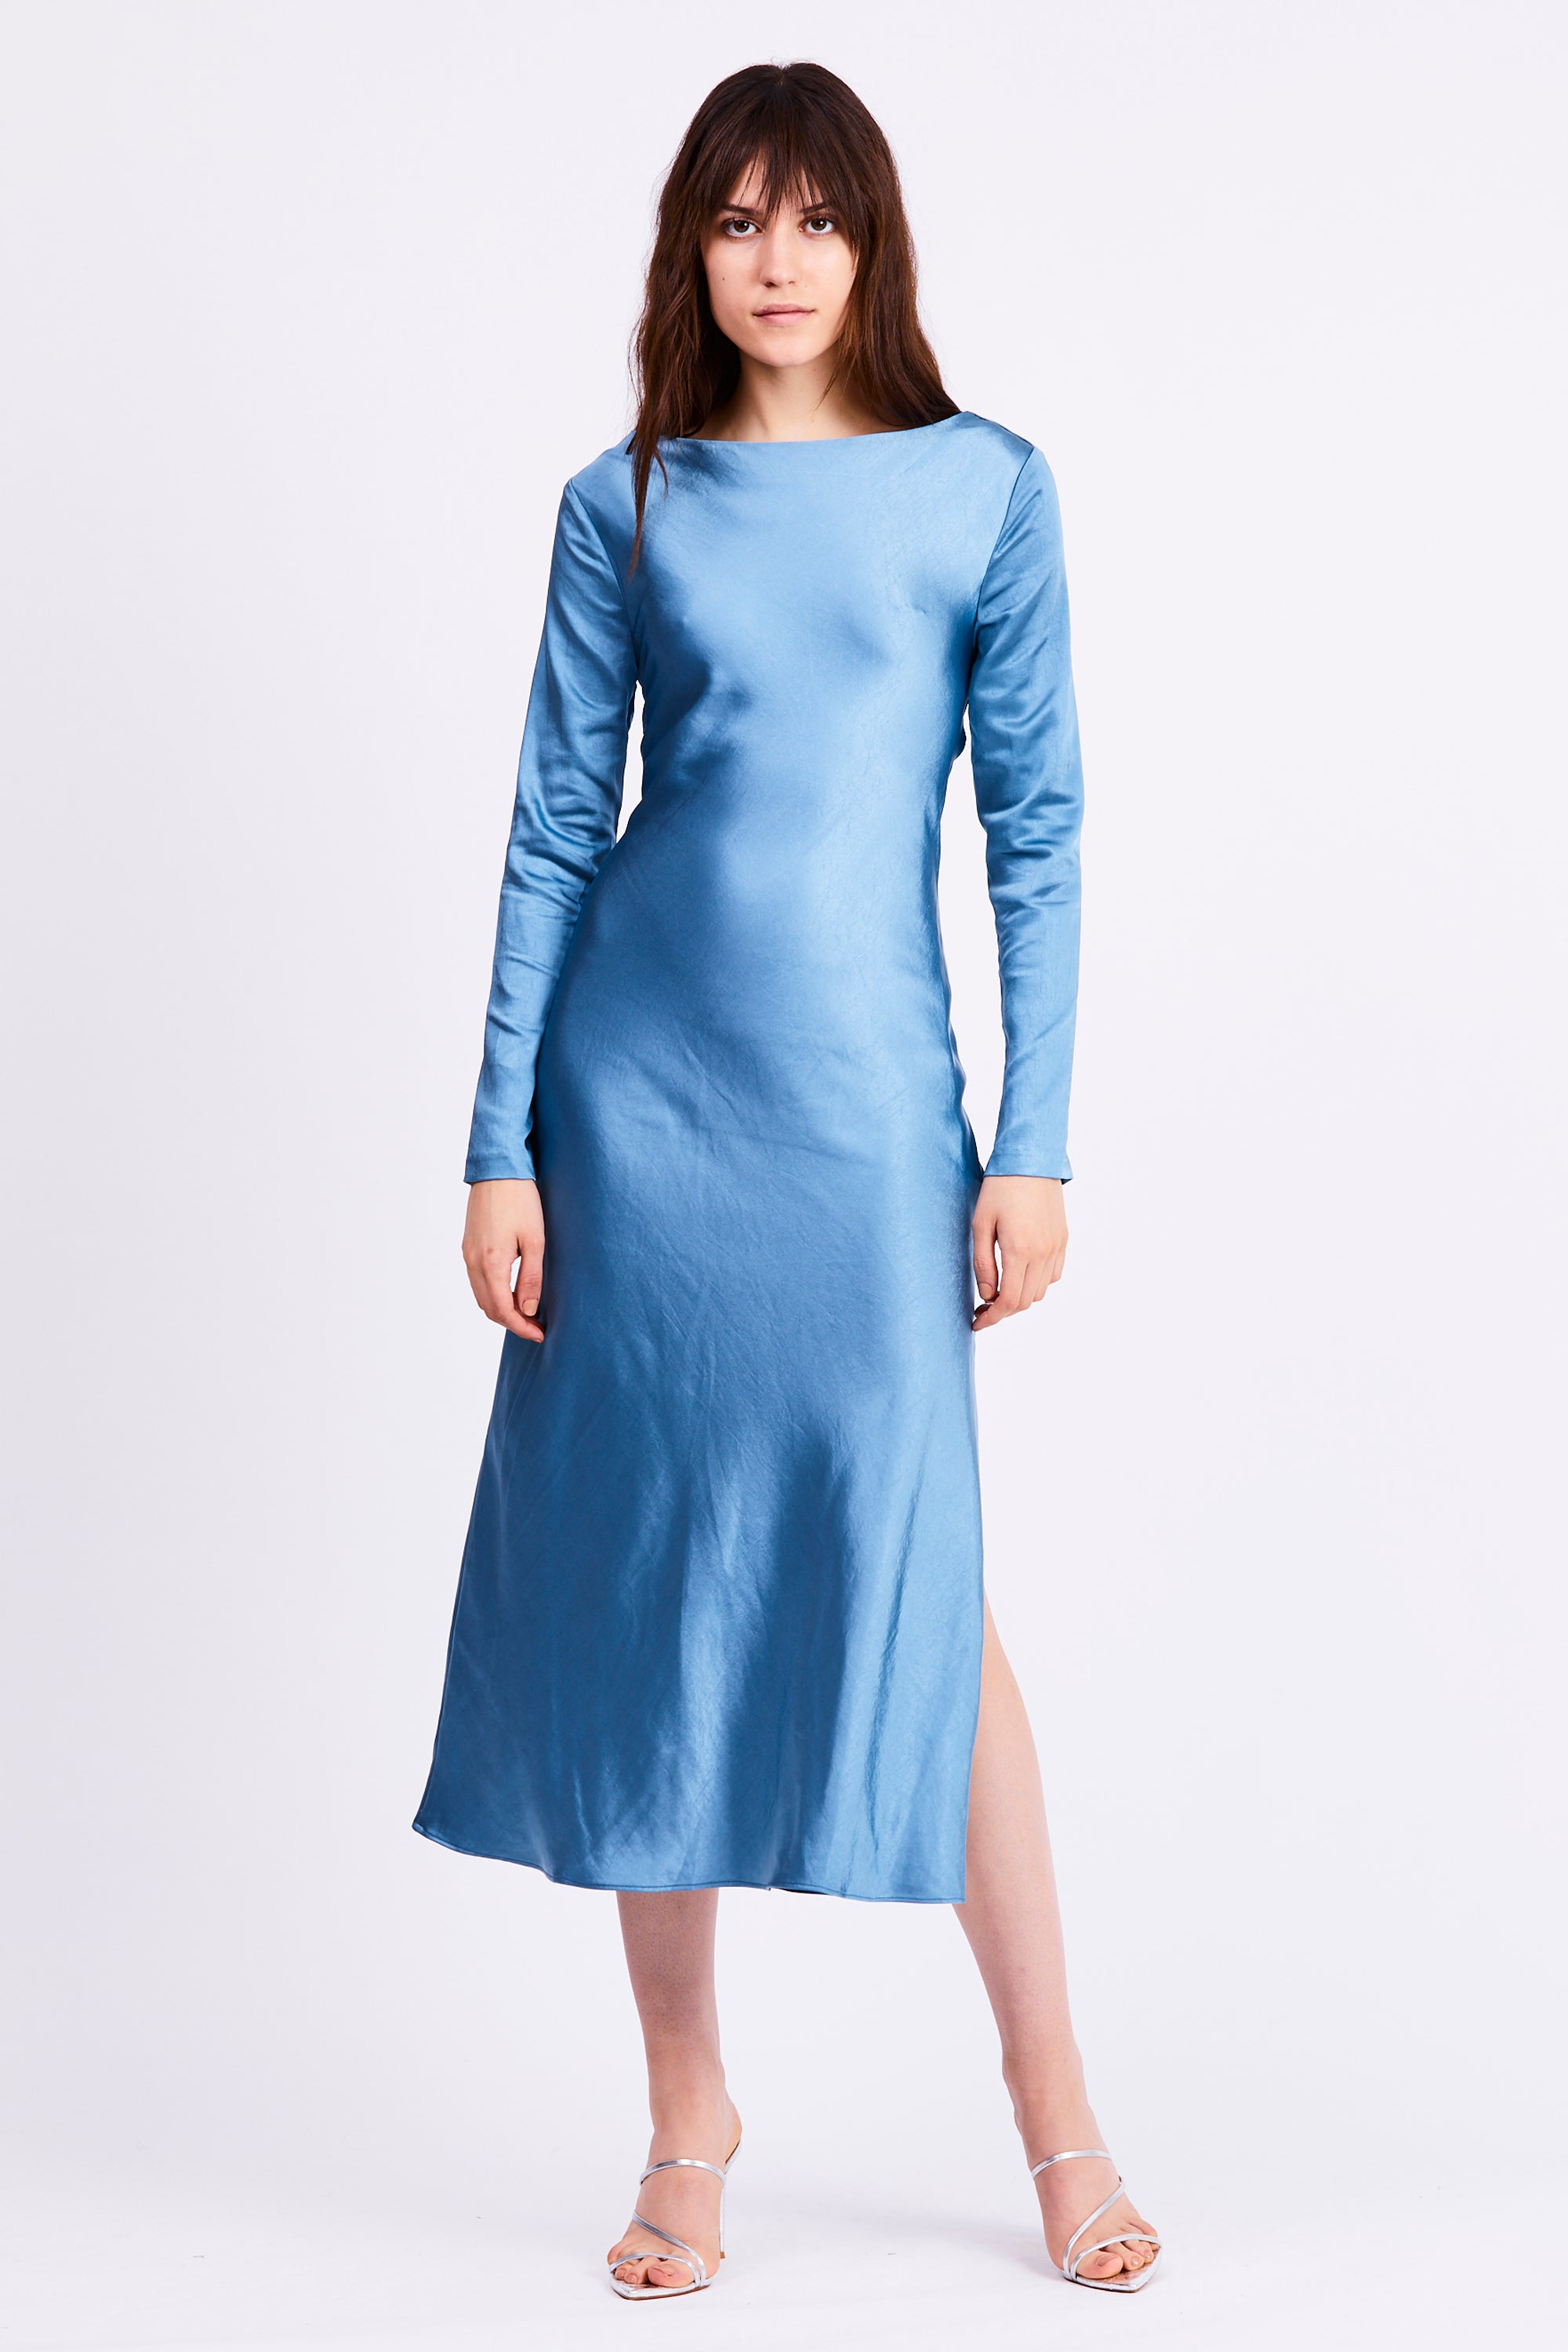 TIE BACK MAXI BIAS DRESS | AGEAN